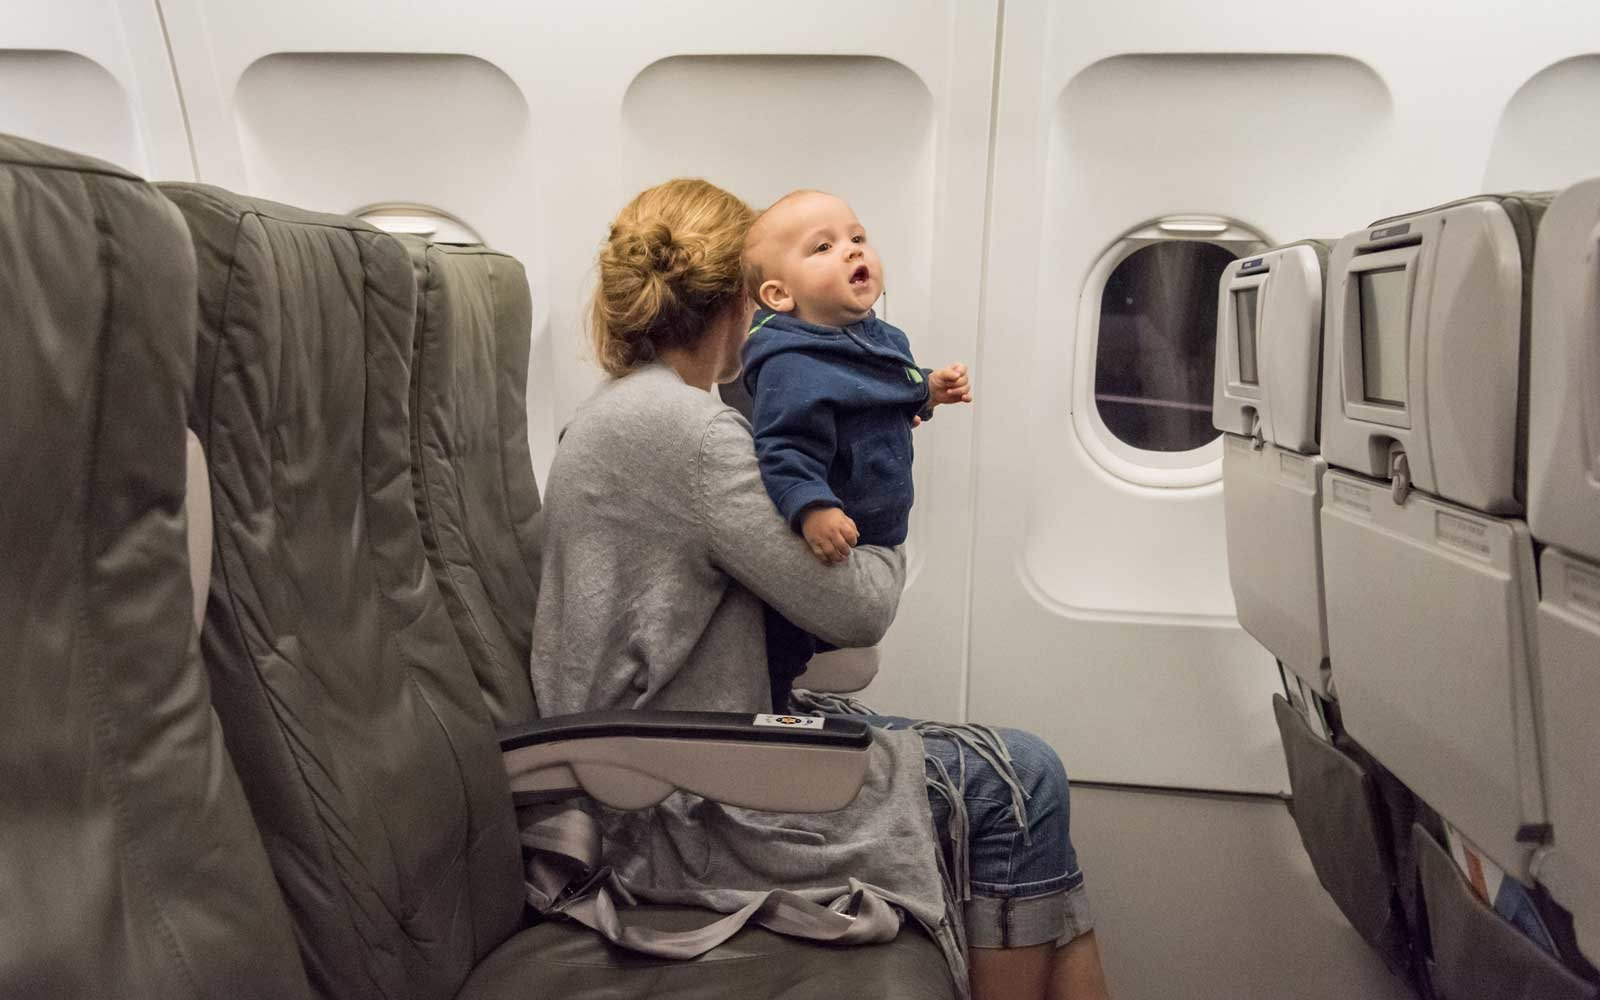 Woman traveling with her baby